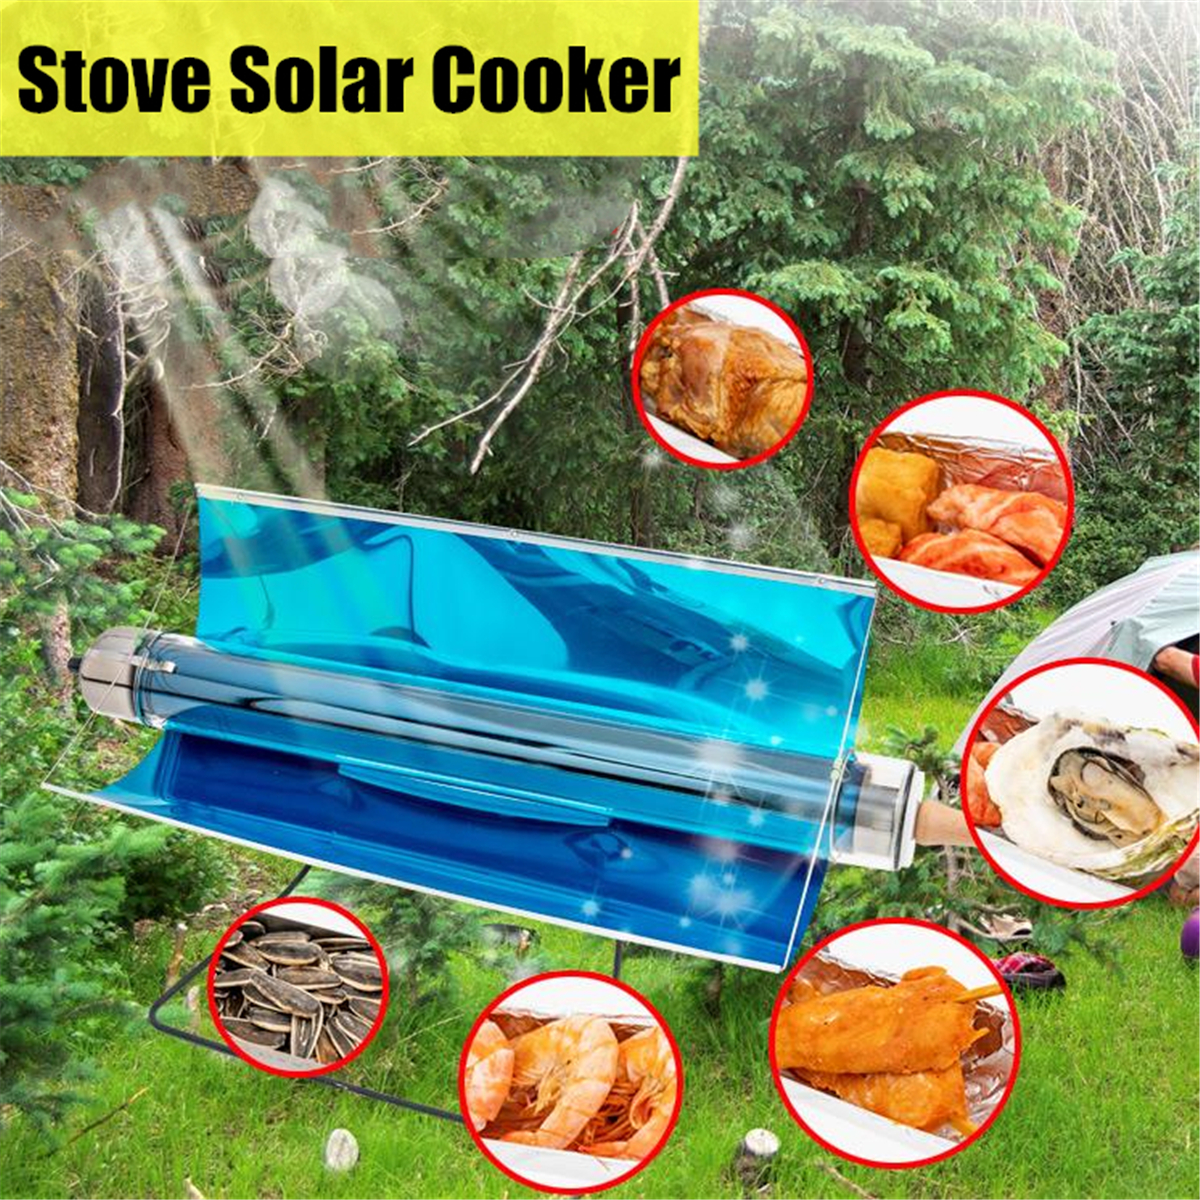 75*35*35 cm Portable Solar Cooking Stove Fuel Free Cooker Oven Grilling Outdoor Tools